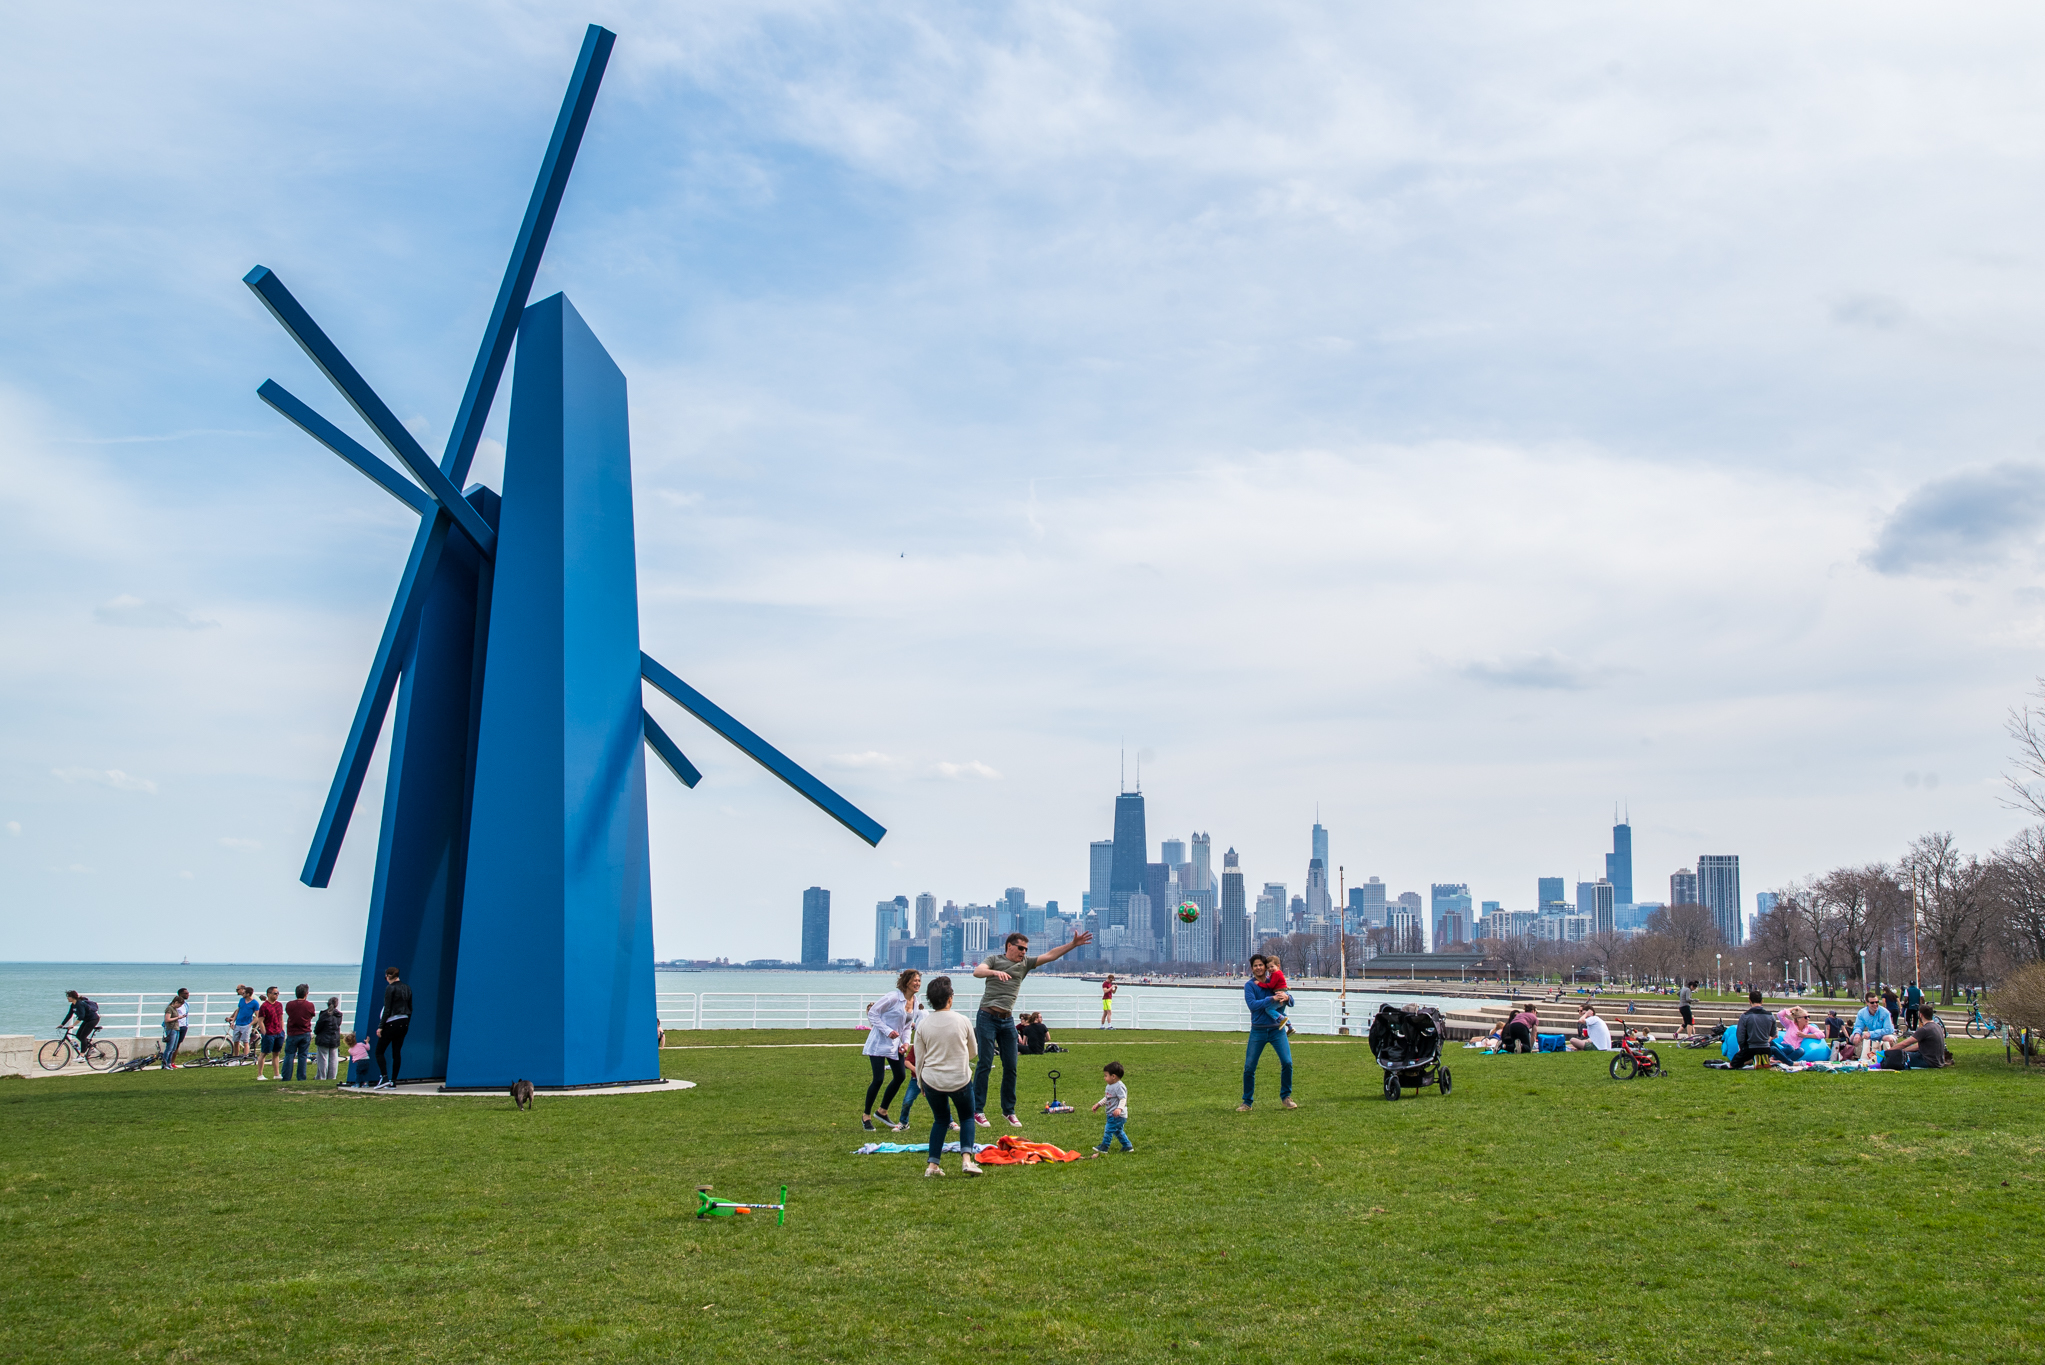 Chicago's lakefront, playgrounds and indoor pools are officially reopening